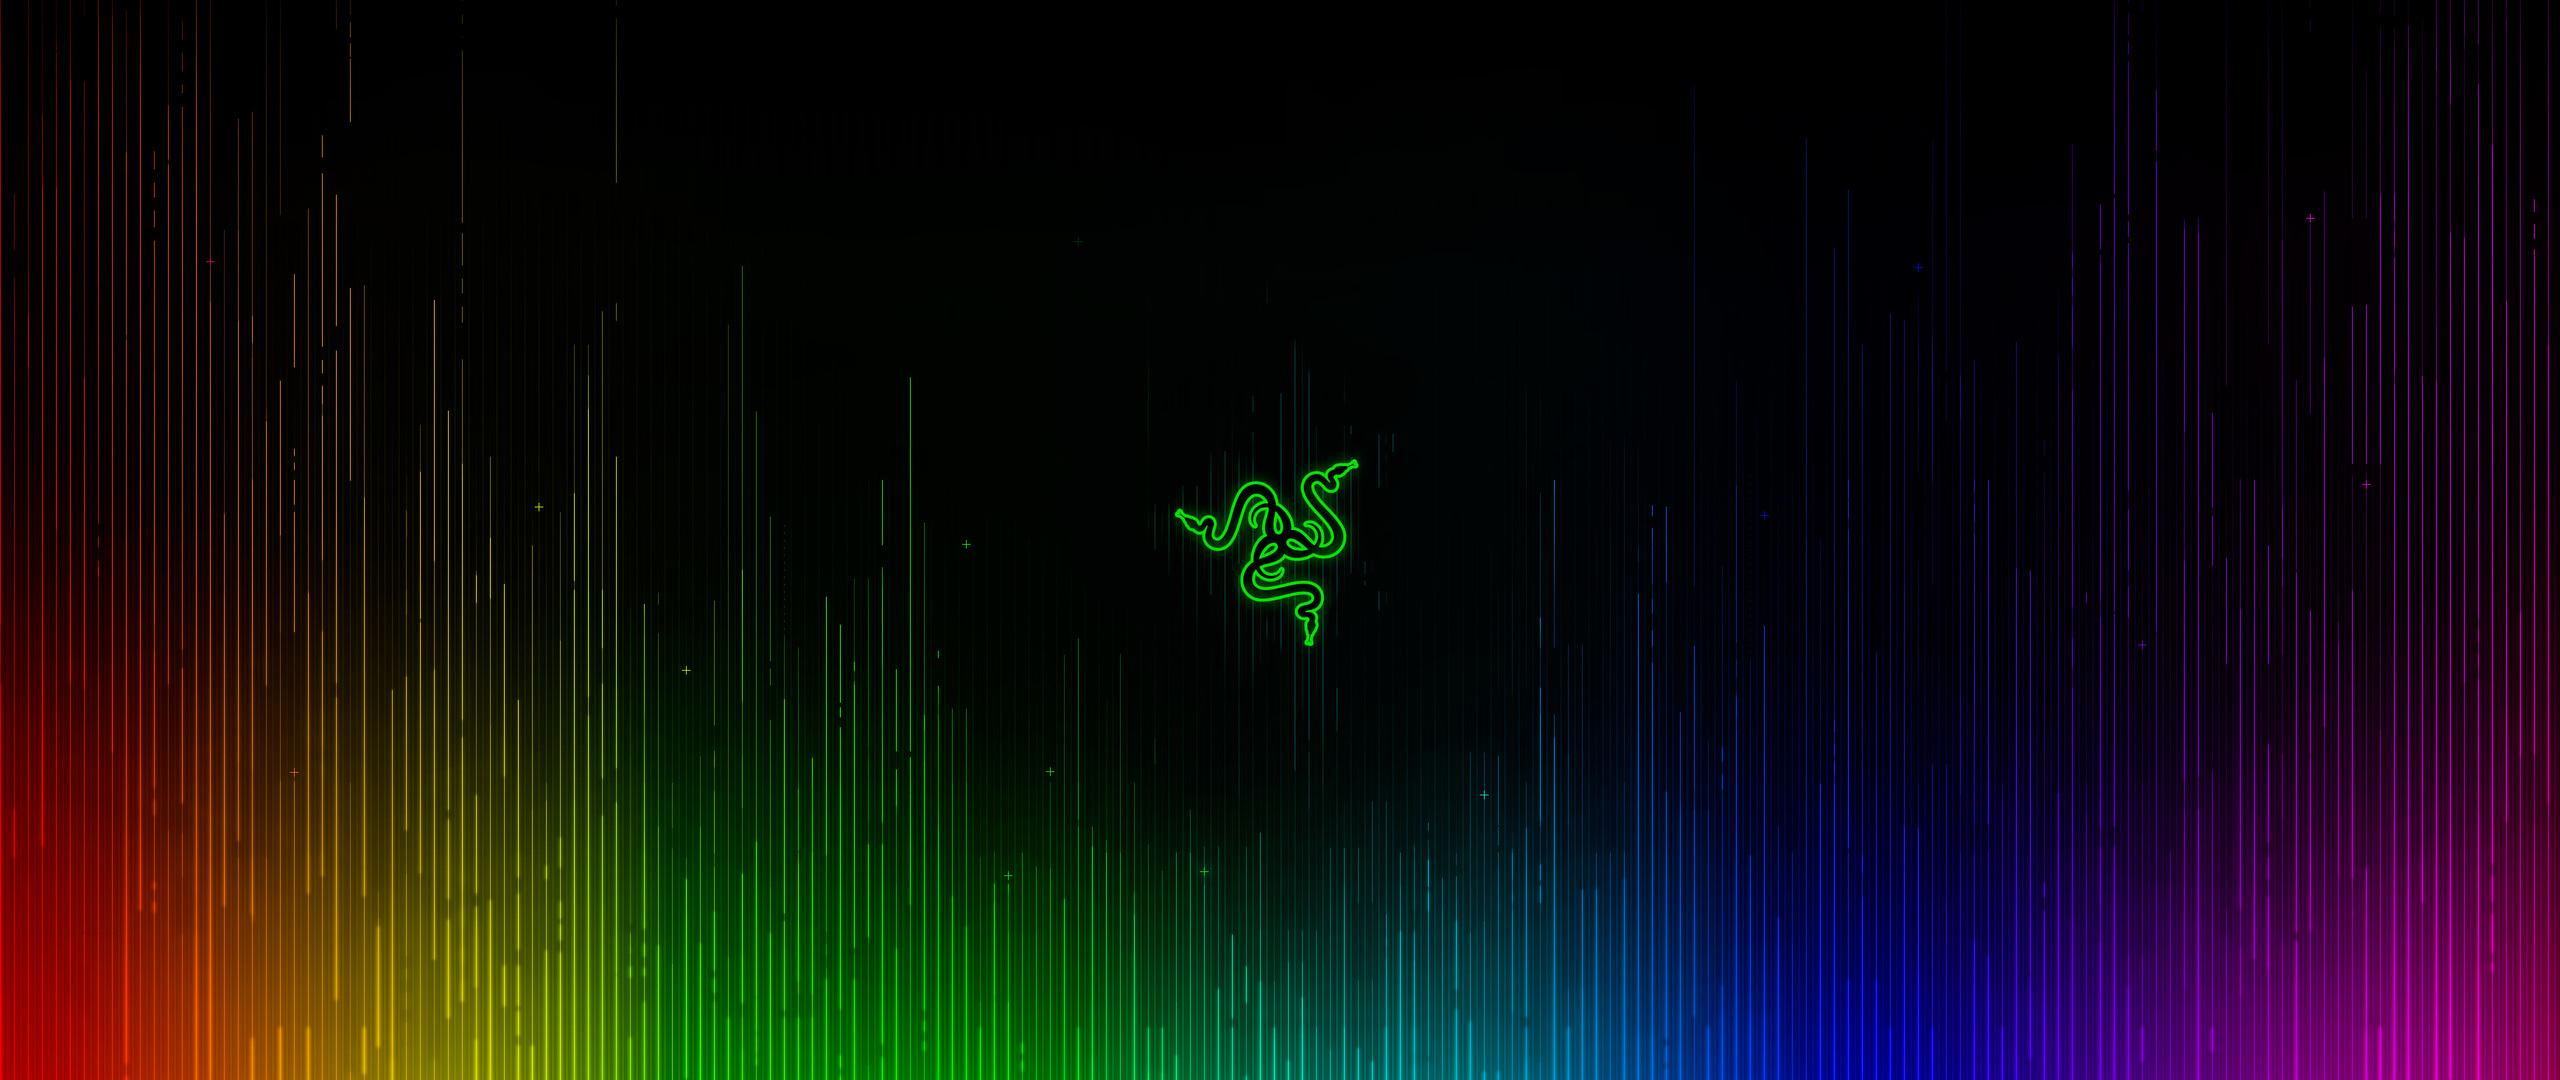 Download Razer Wallpaper 2560x1080 Hd Backgrounds Download Itl Cat